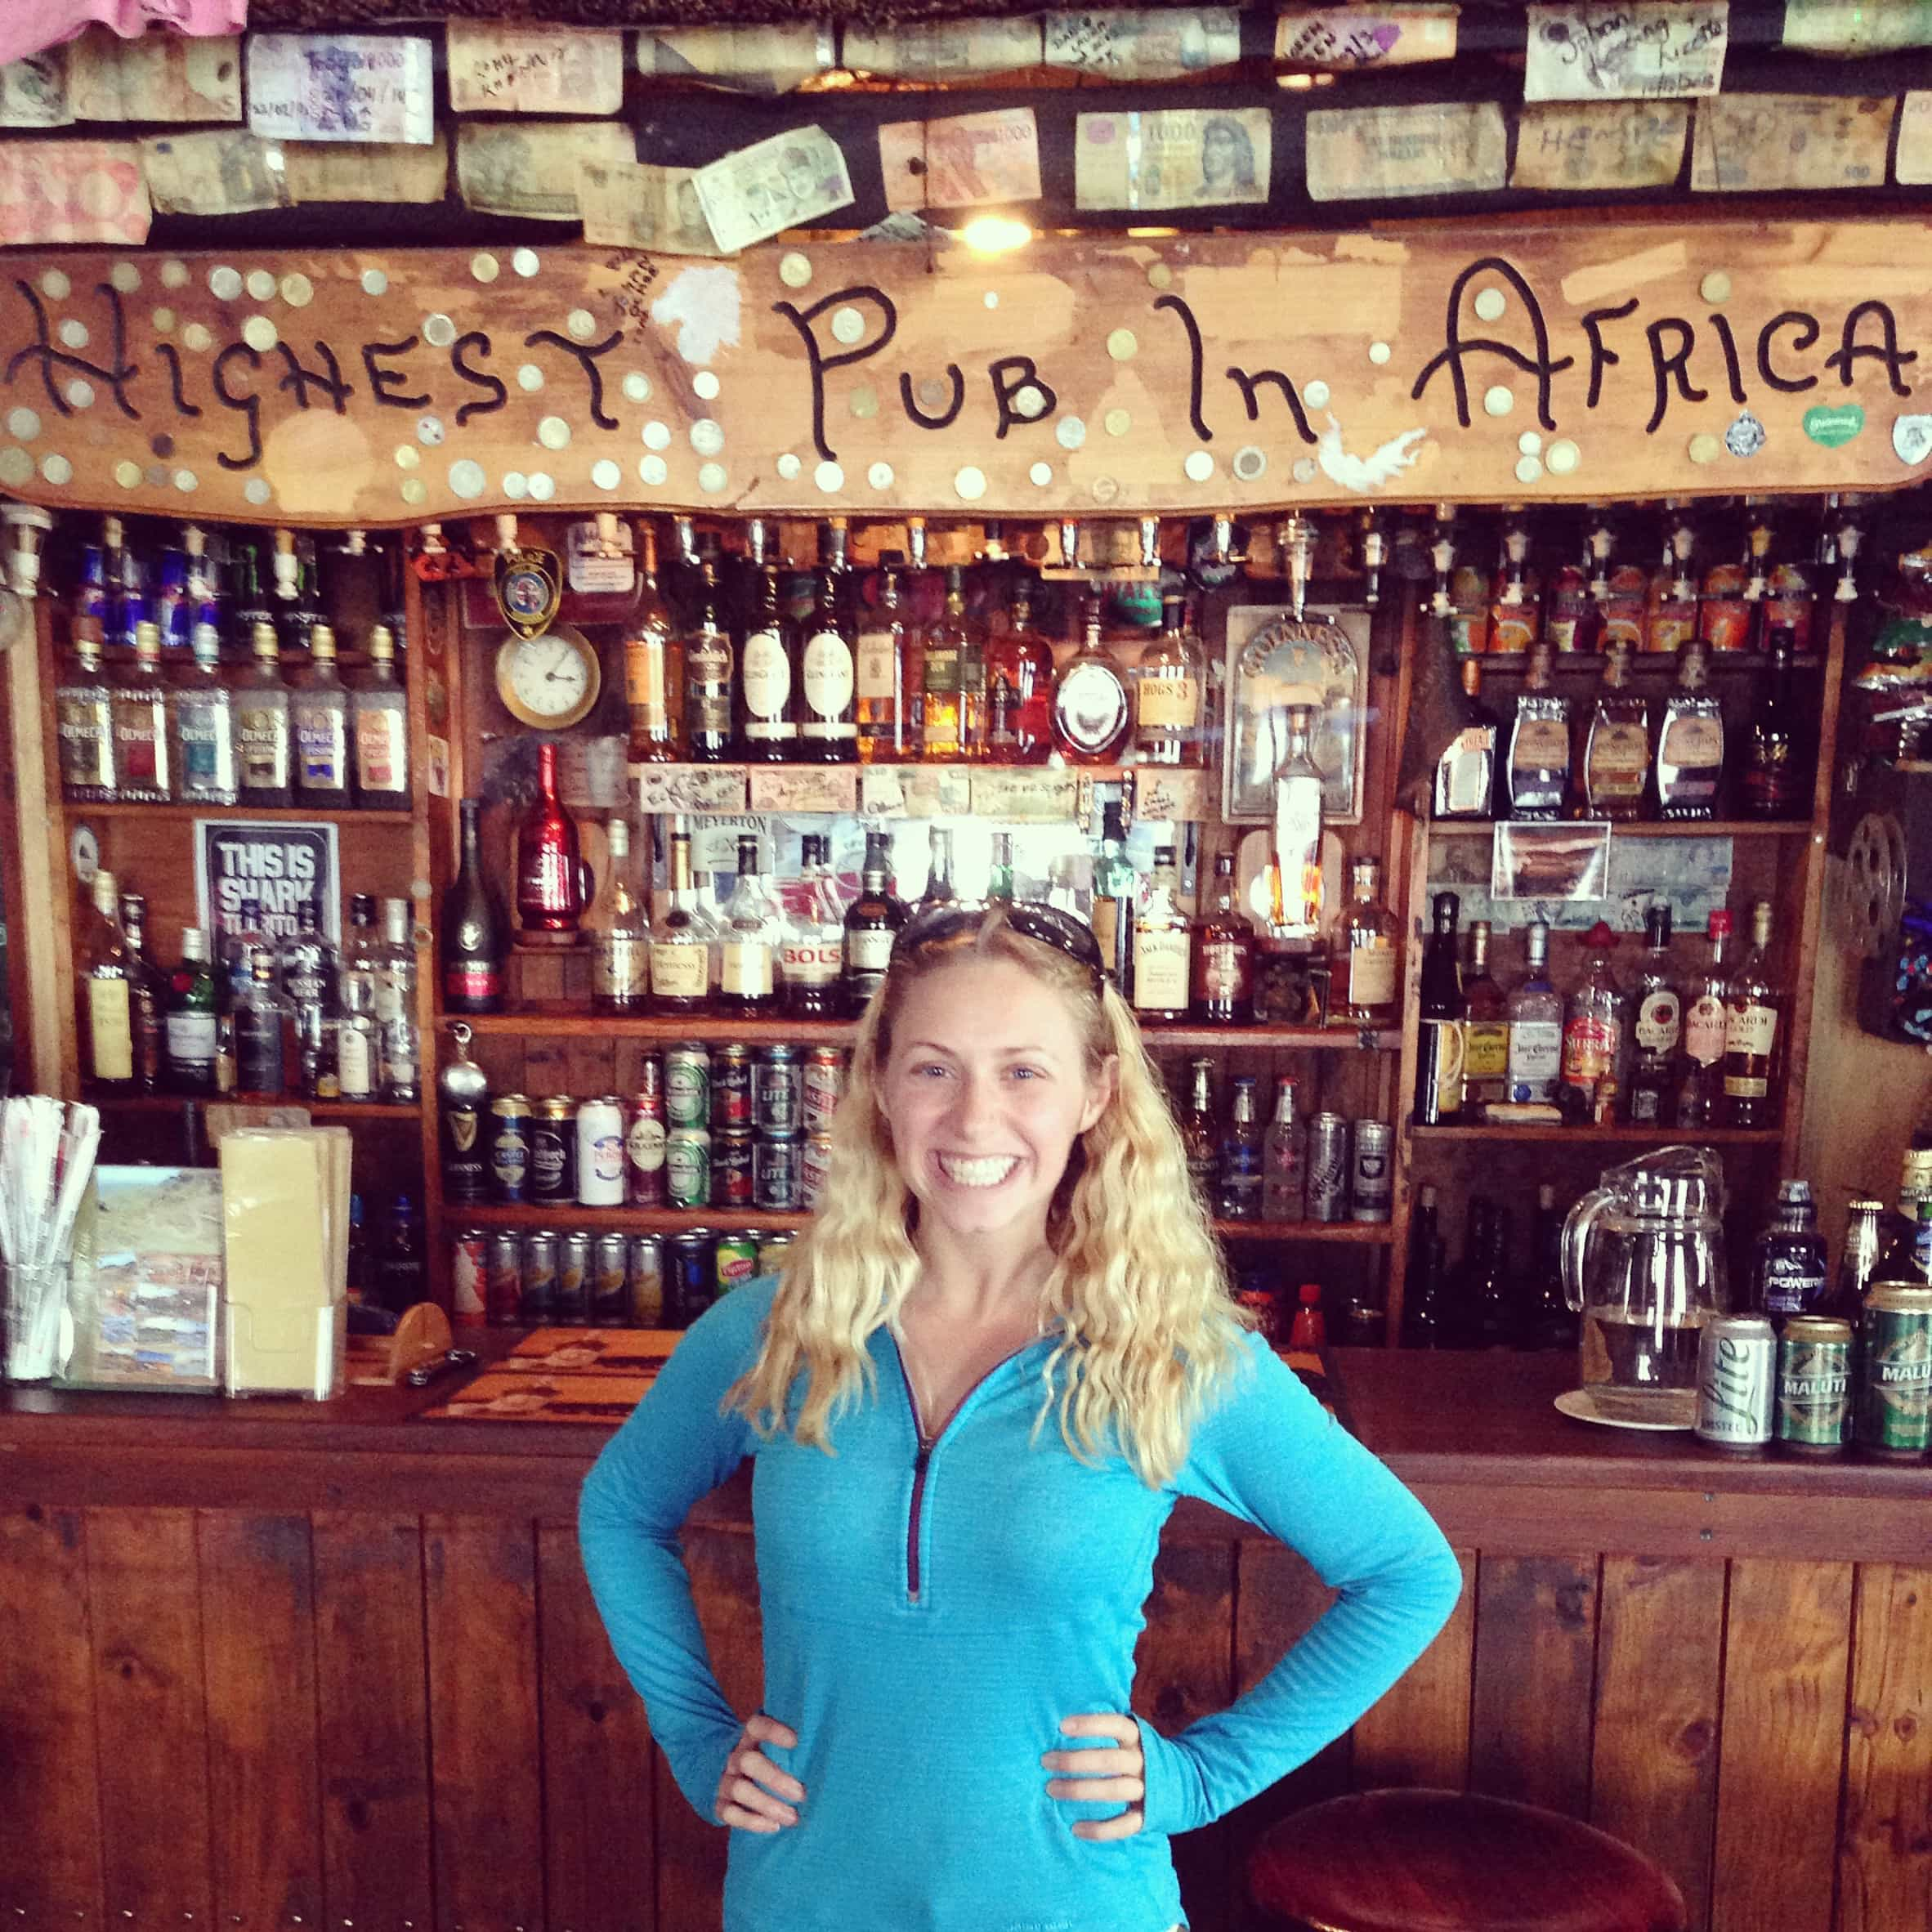 Drinking in the Clouds: the Highest Pub in Africa